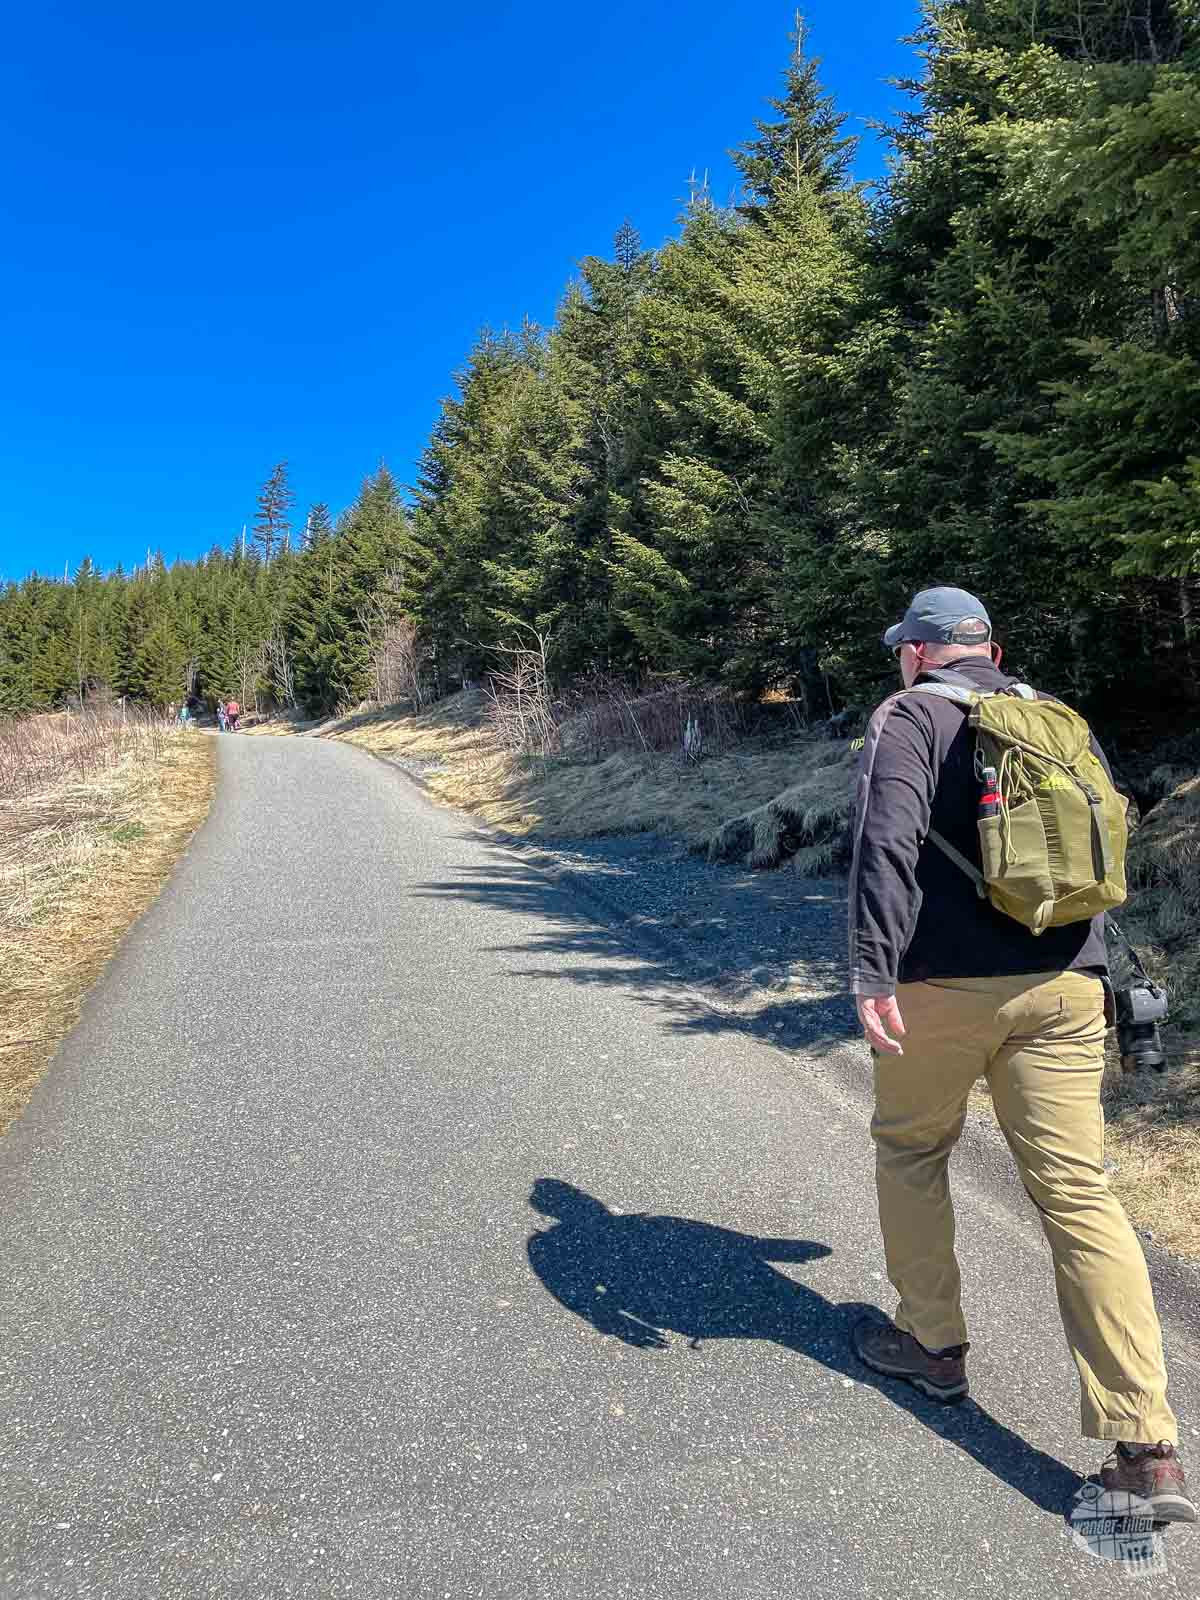 The Clingmans Dome Trails is definitely a must of the Great Smoky Mountain National Parks hikes.